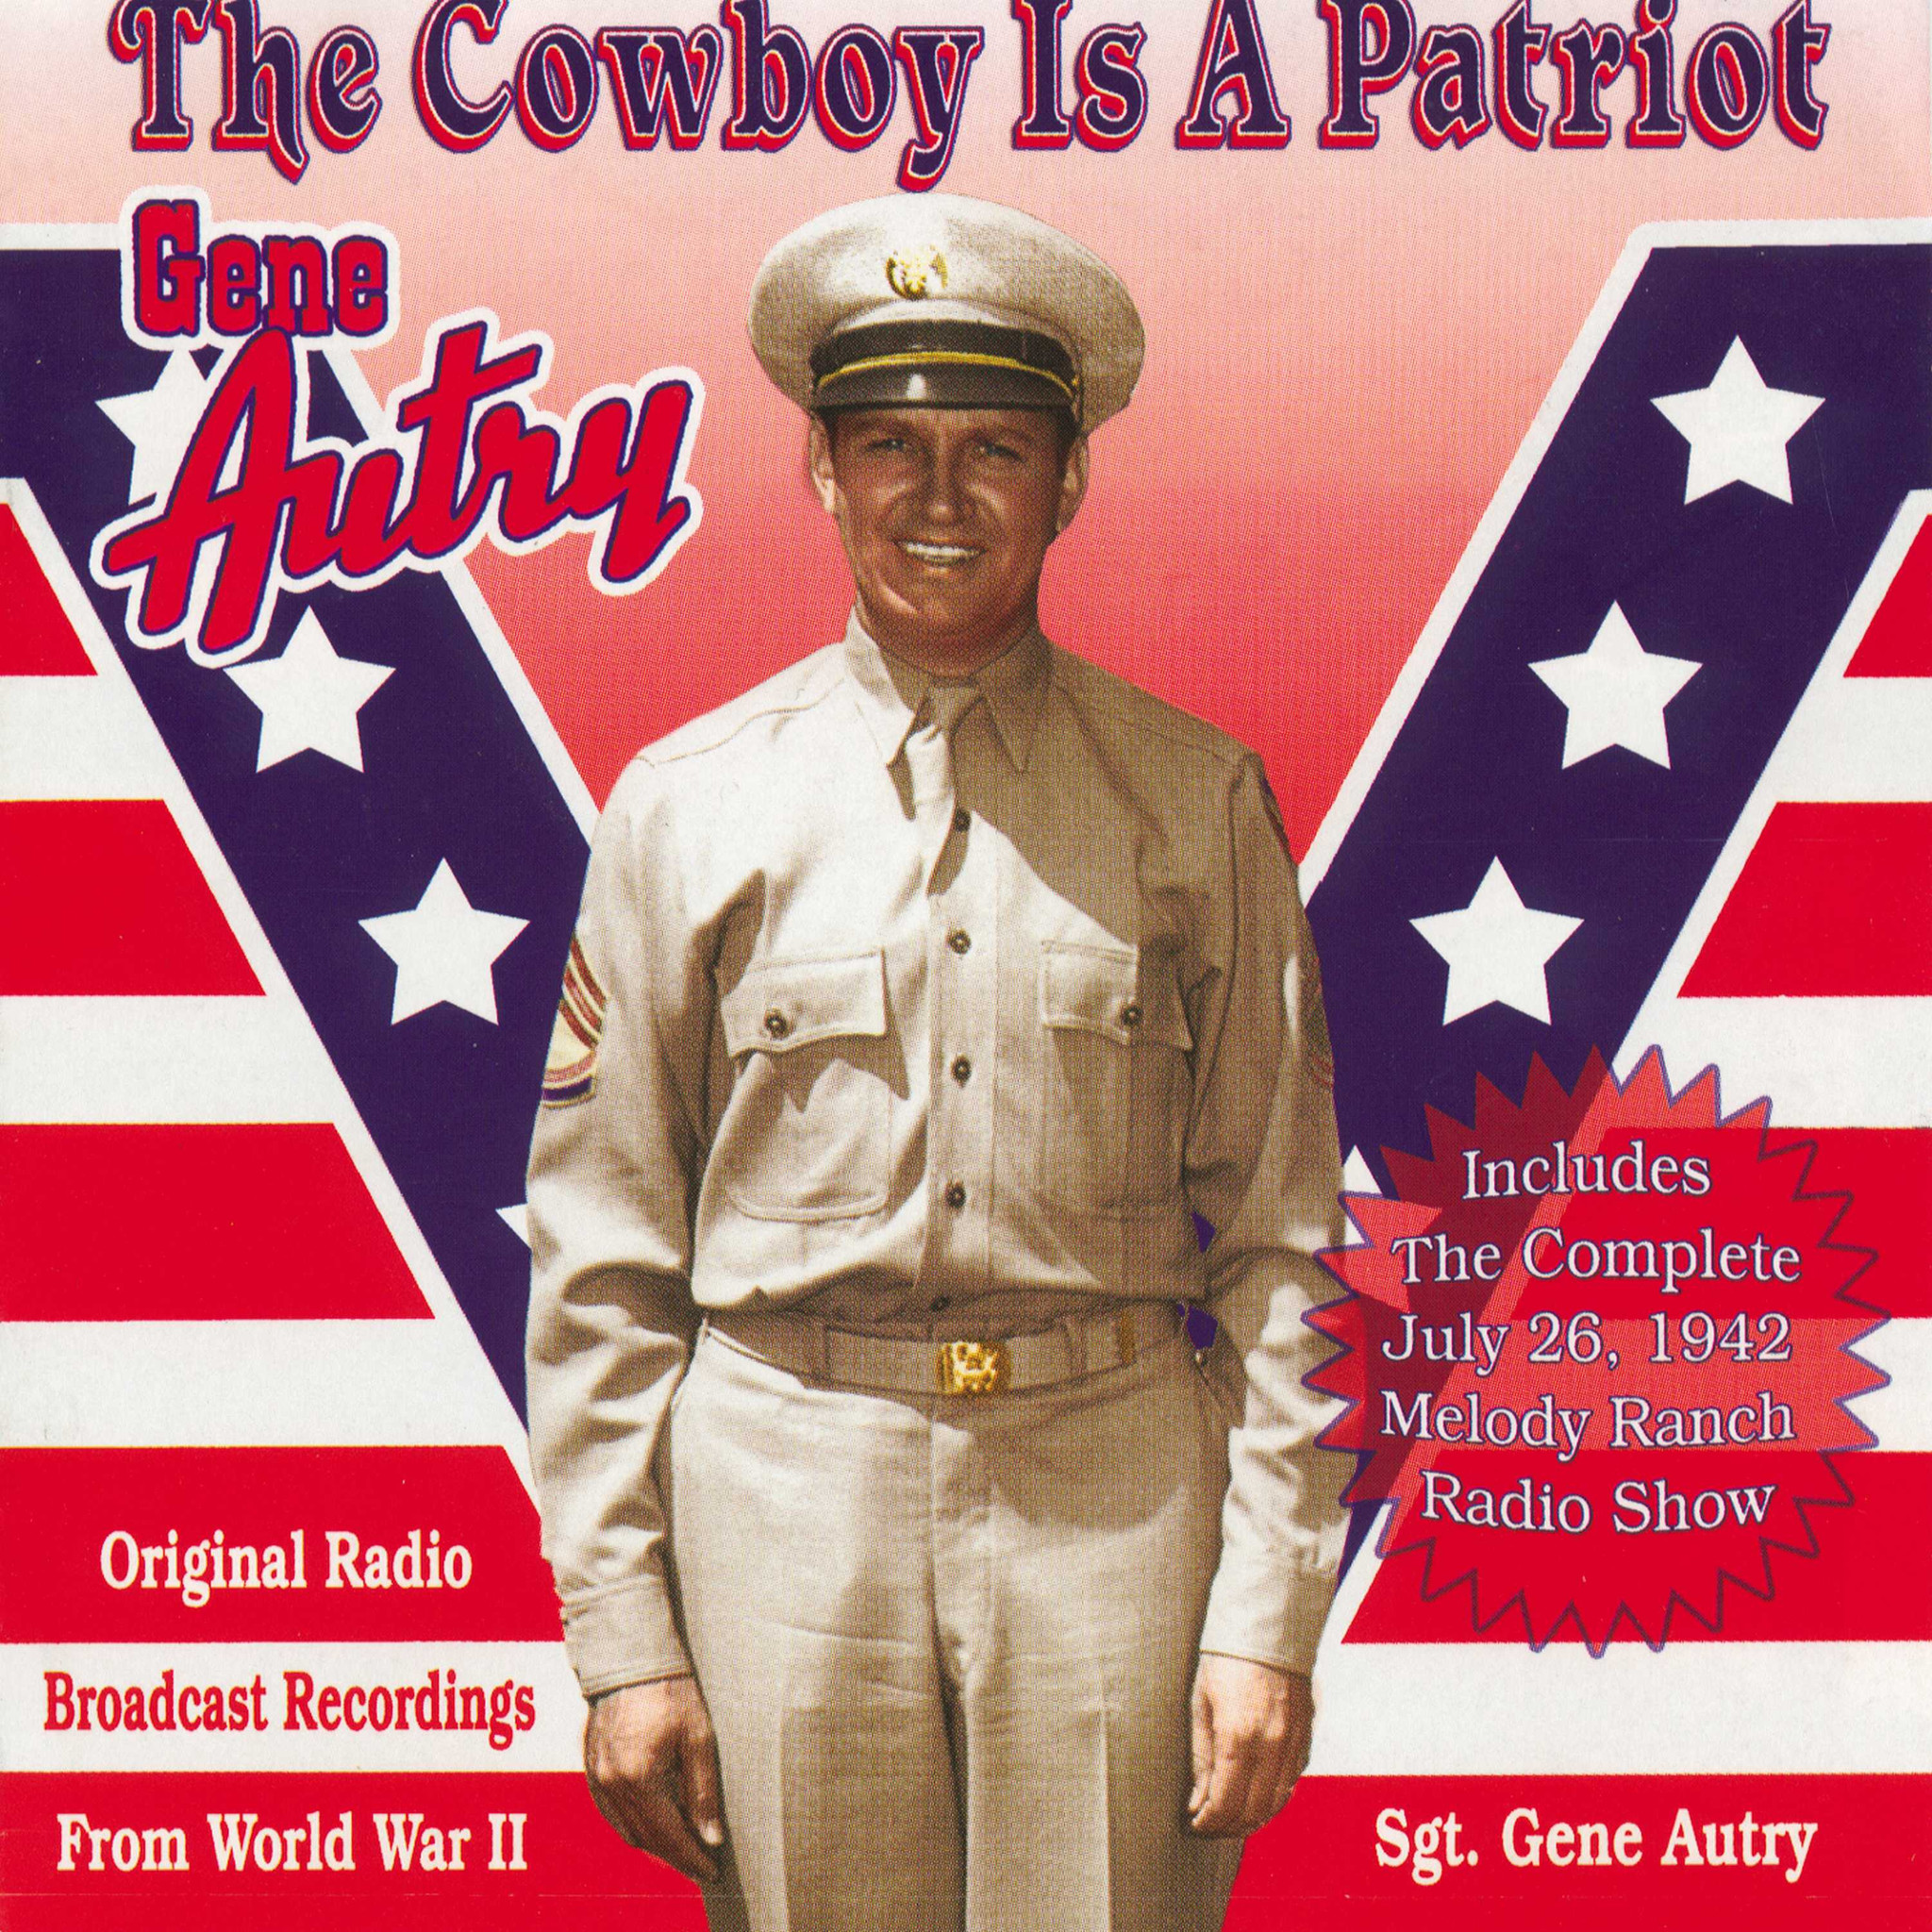 The Cowboy is a Patriot - Gene Autry - Musik - COUNTRY - 0030206640823 - November 16, 2019